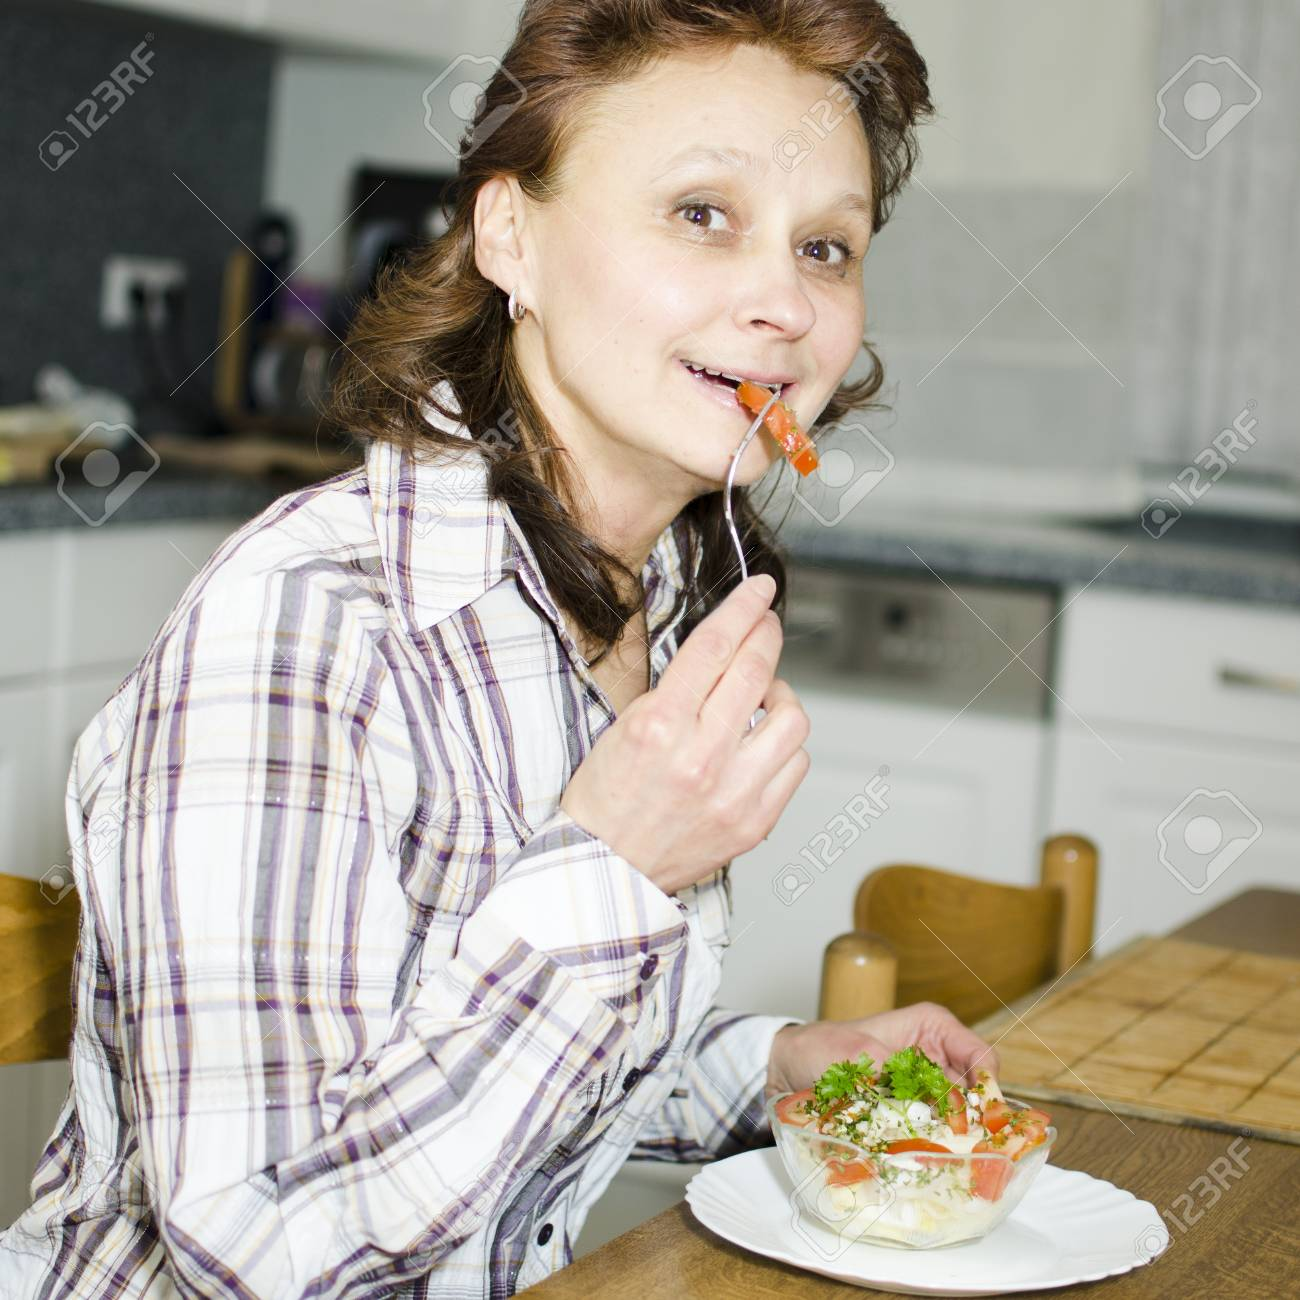 A woman is eating salad in the kitchen. - 17079591